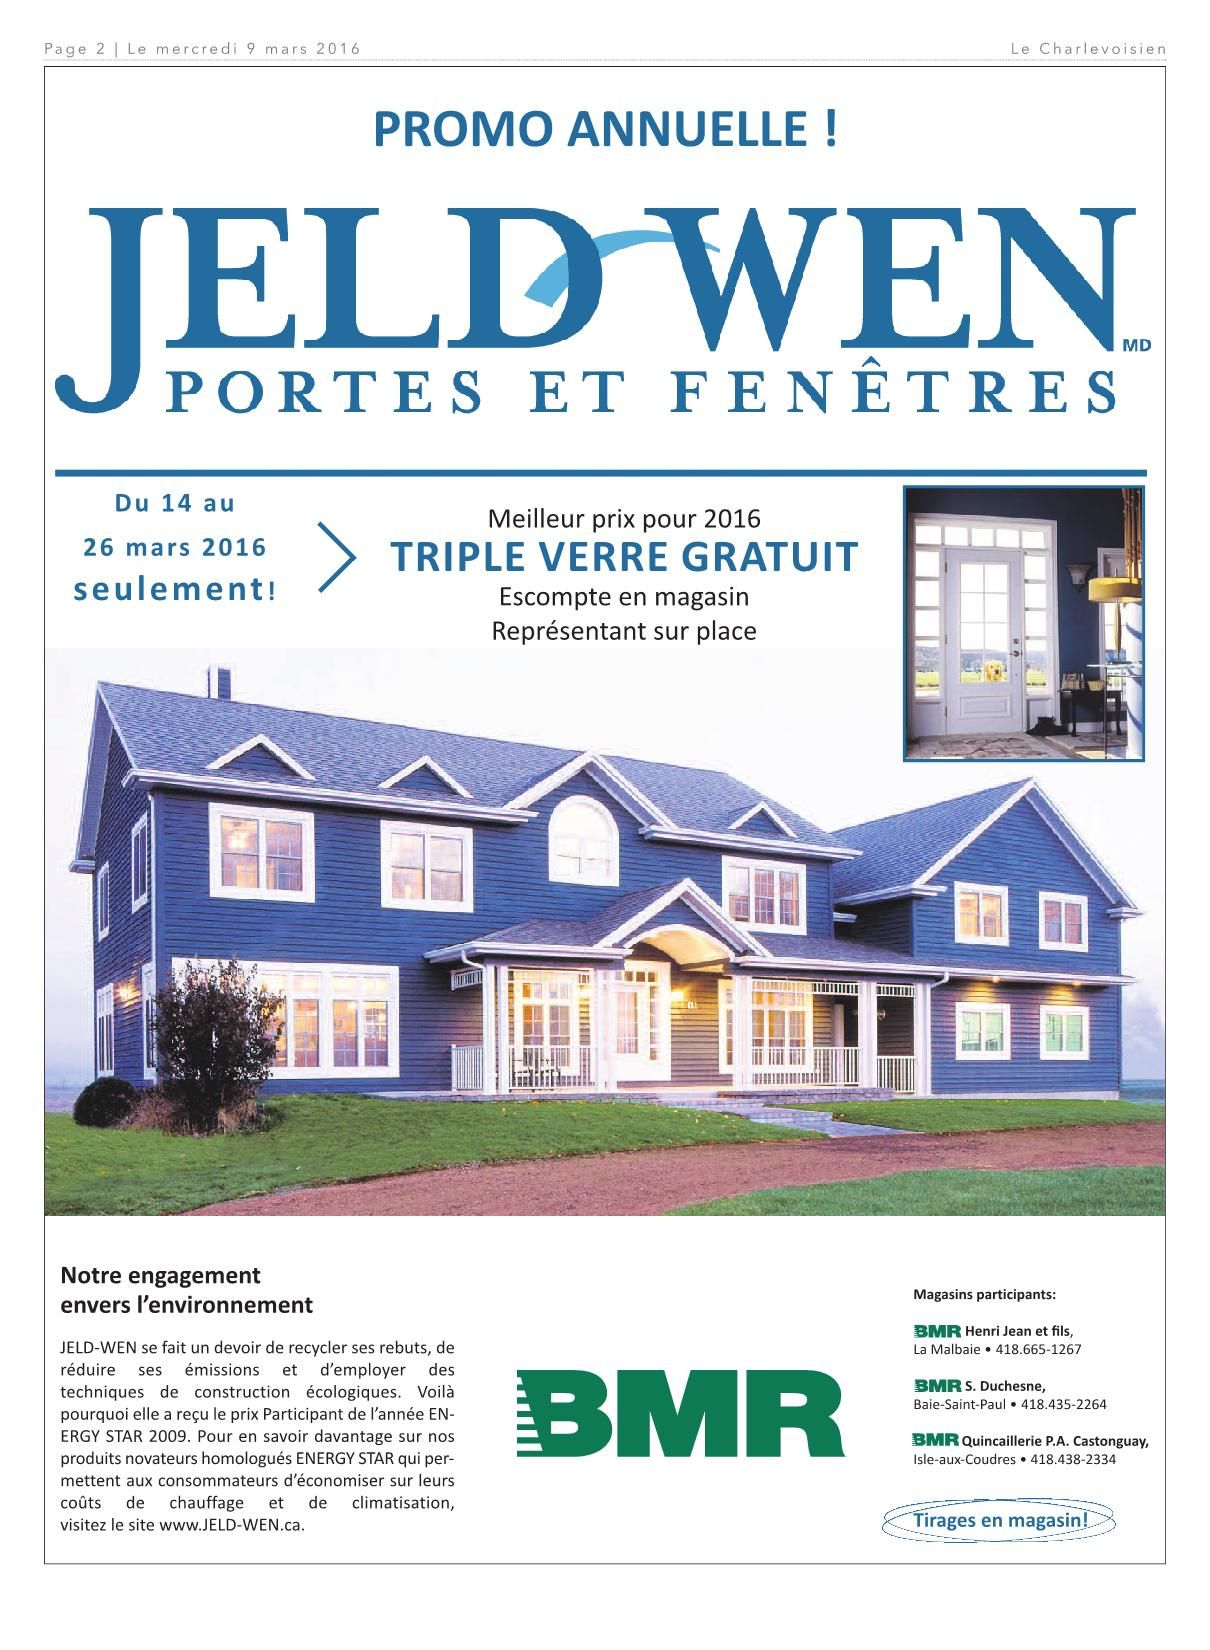 Porte De Maison Bmr Le Charlevoisien 9 Mars 2016 Pages 1 40 Text Version Fliphtml5